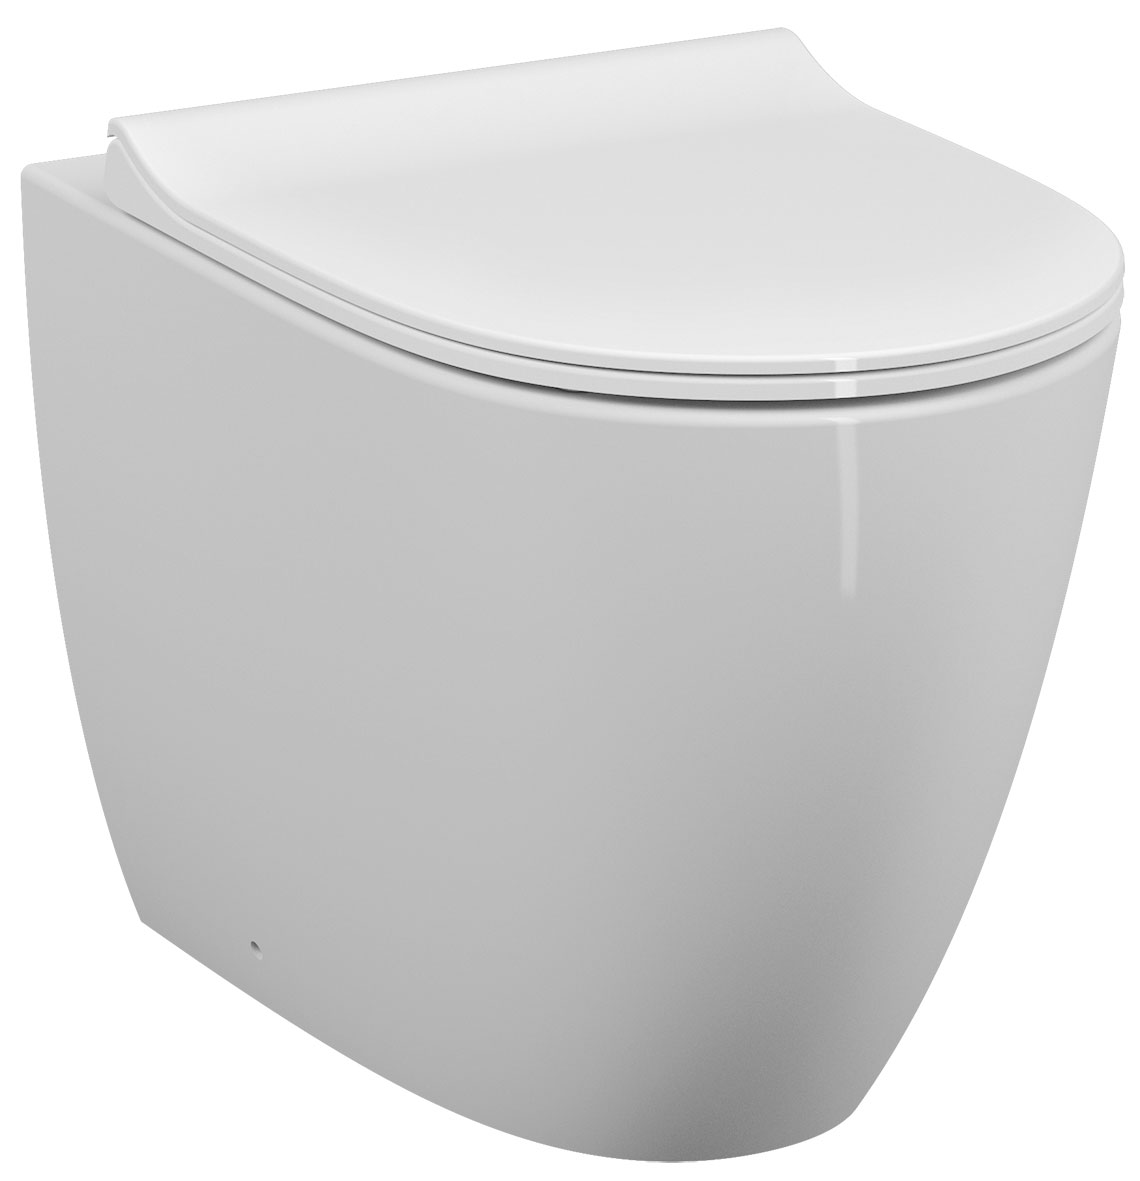 click on Sento Rimless Compact Wall Hung WC image to enlarge